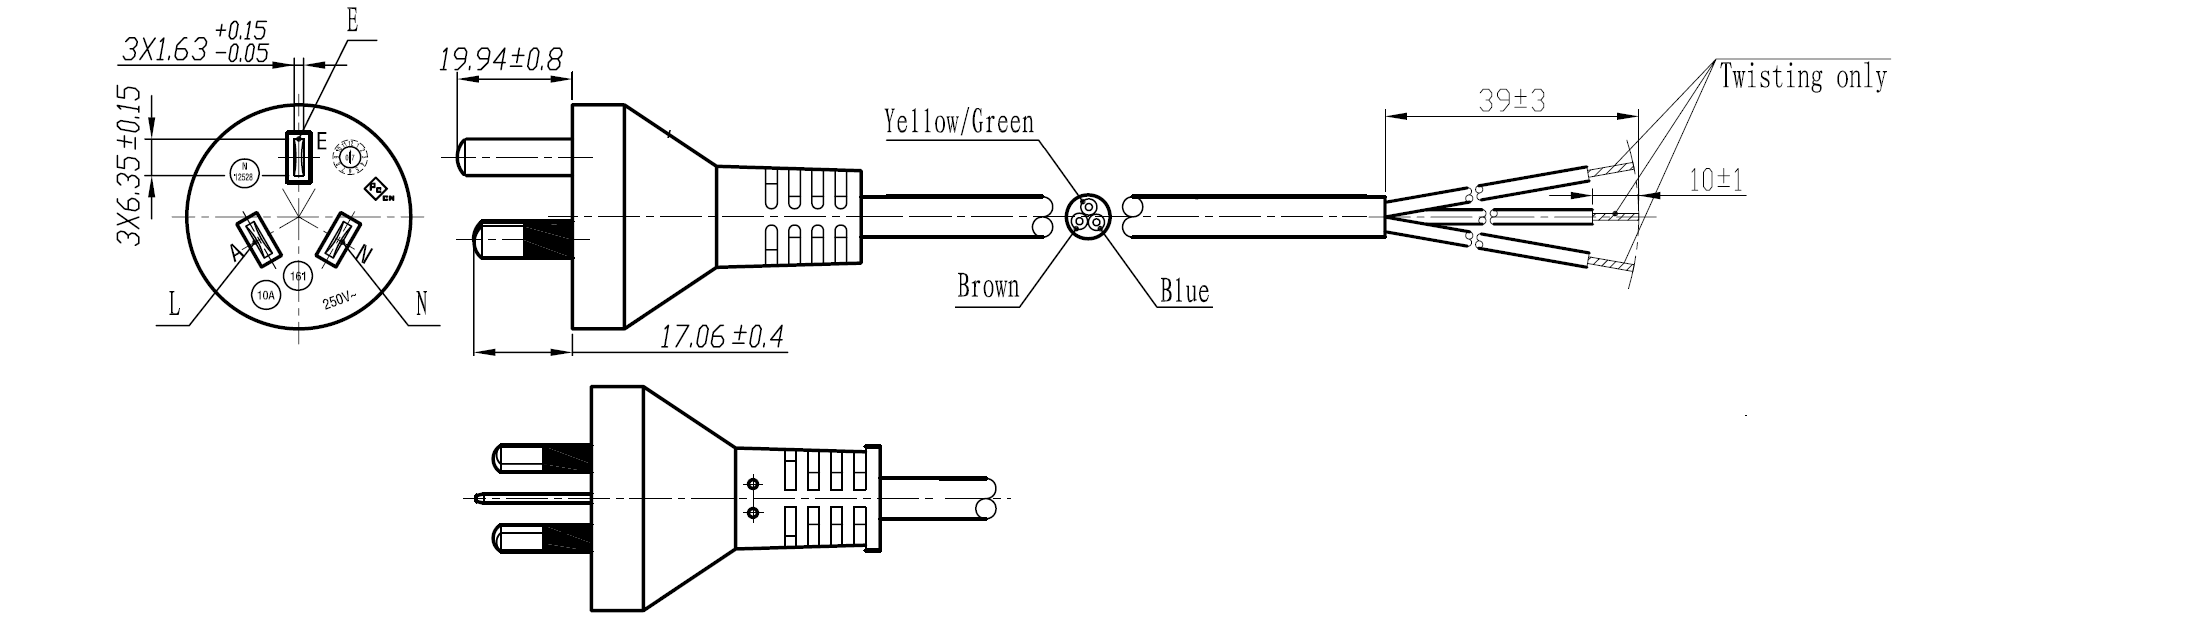 3 phase plug wiring diagram 3 image 3 phase plug wiring diagram 3 auto wiring diagram on 3 phase plug wiring diagram